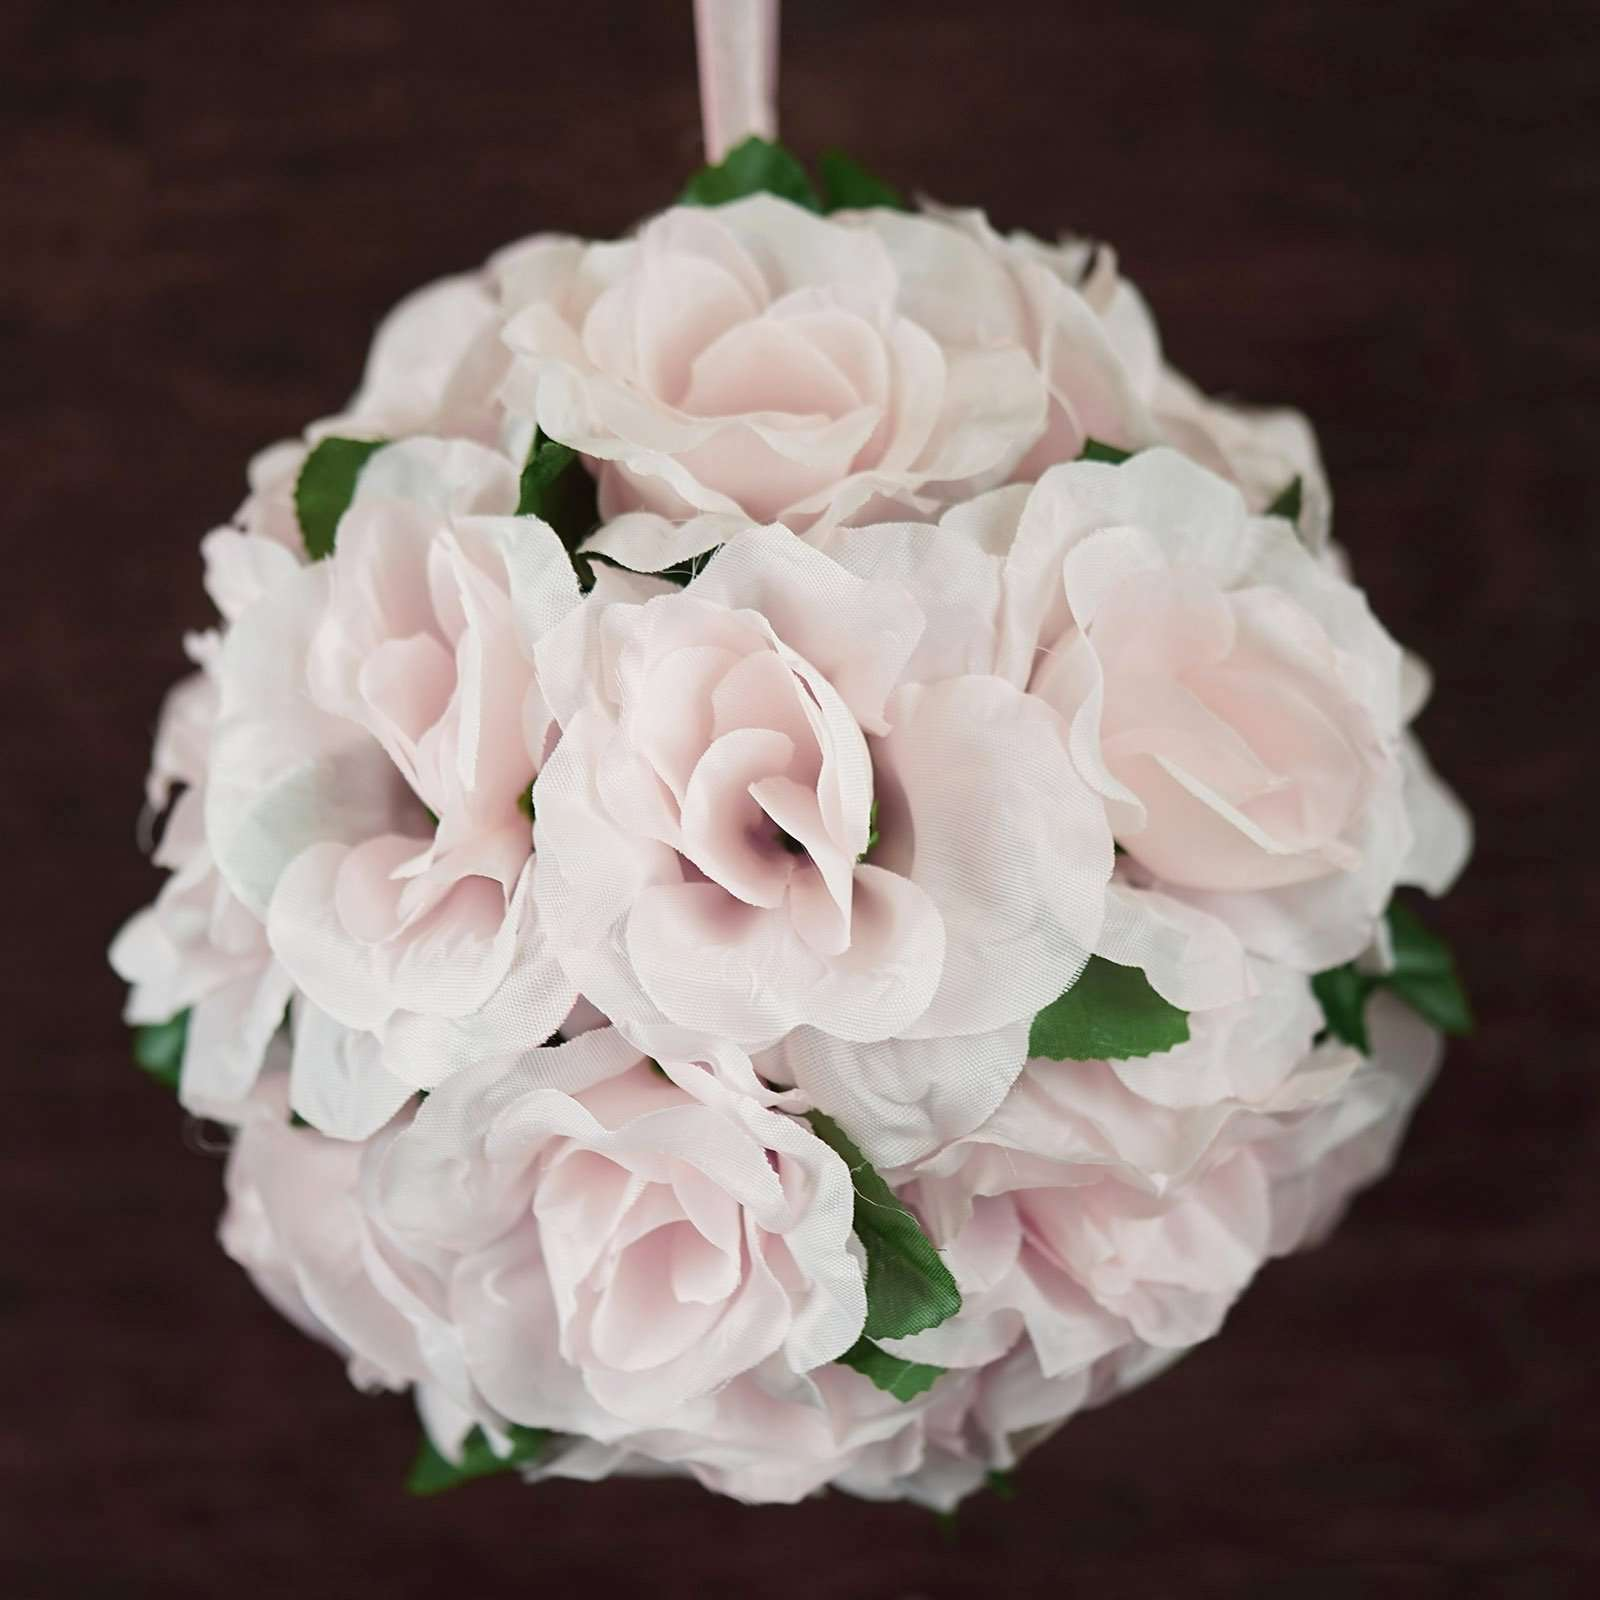 4 pack 7 blush silk rose pomander kissing flower balls wedding 4 pack 7 blush silk rose pomander kissing flower balls wedding centerpieces decoration mightylinksfo